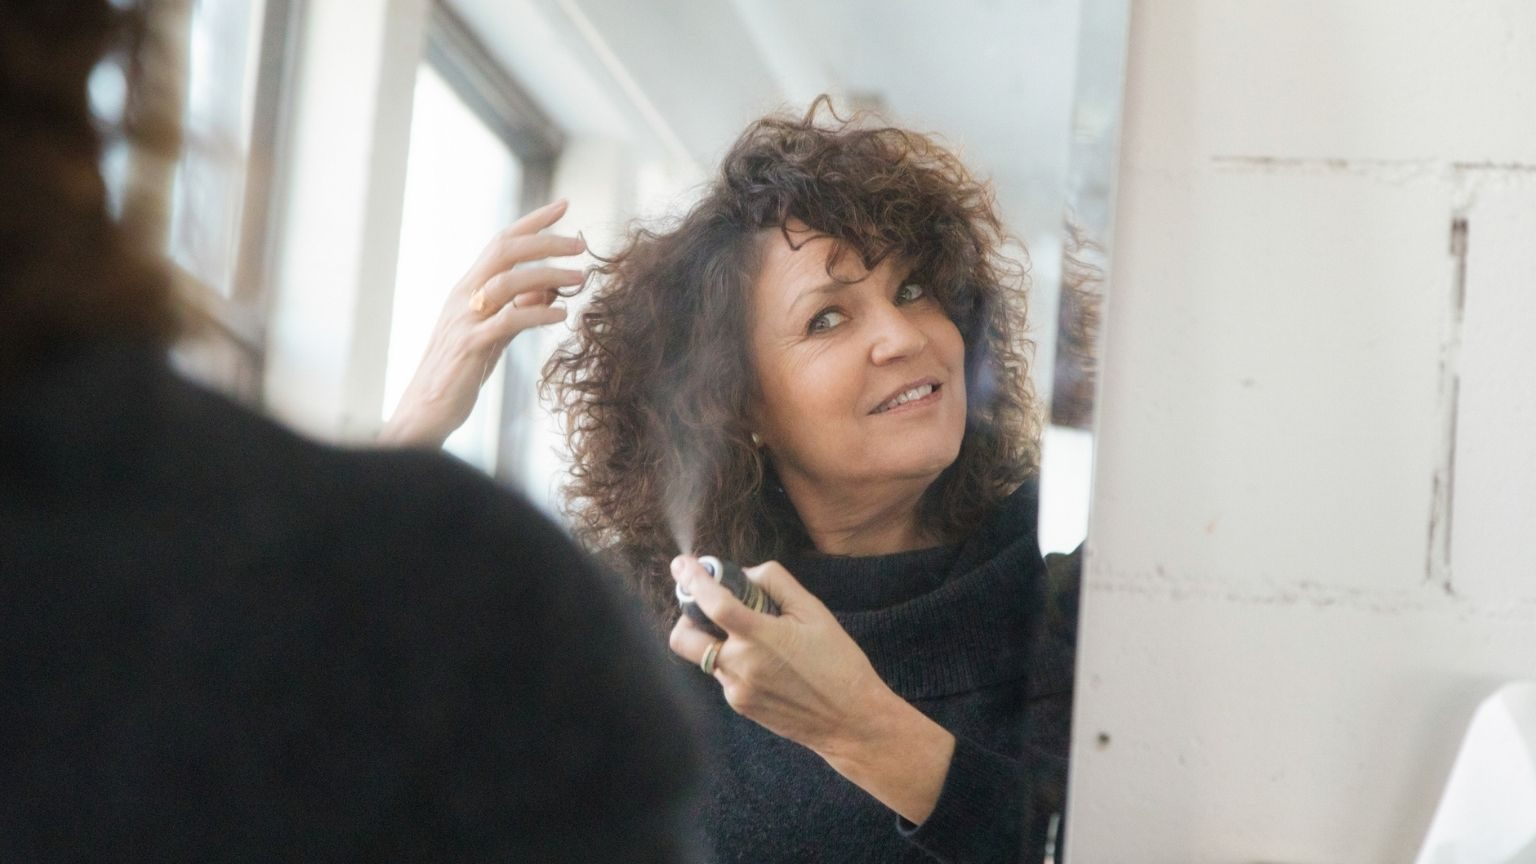 woman applying dry shampoo in front of mirror